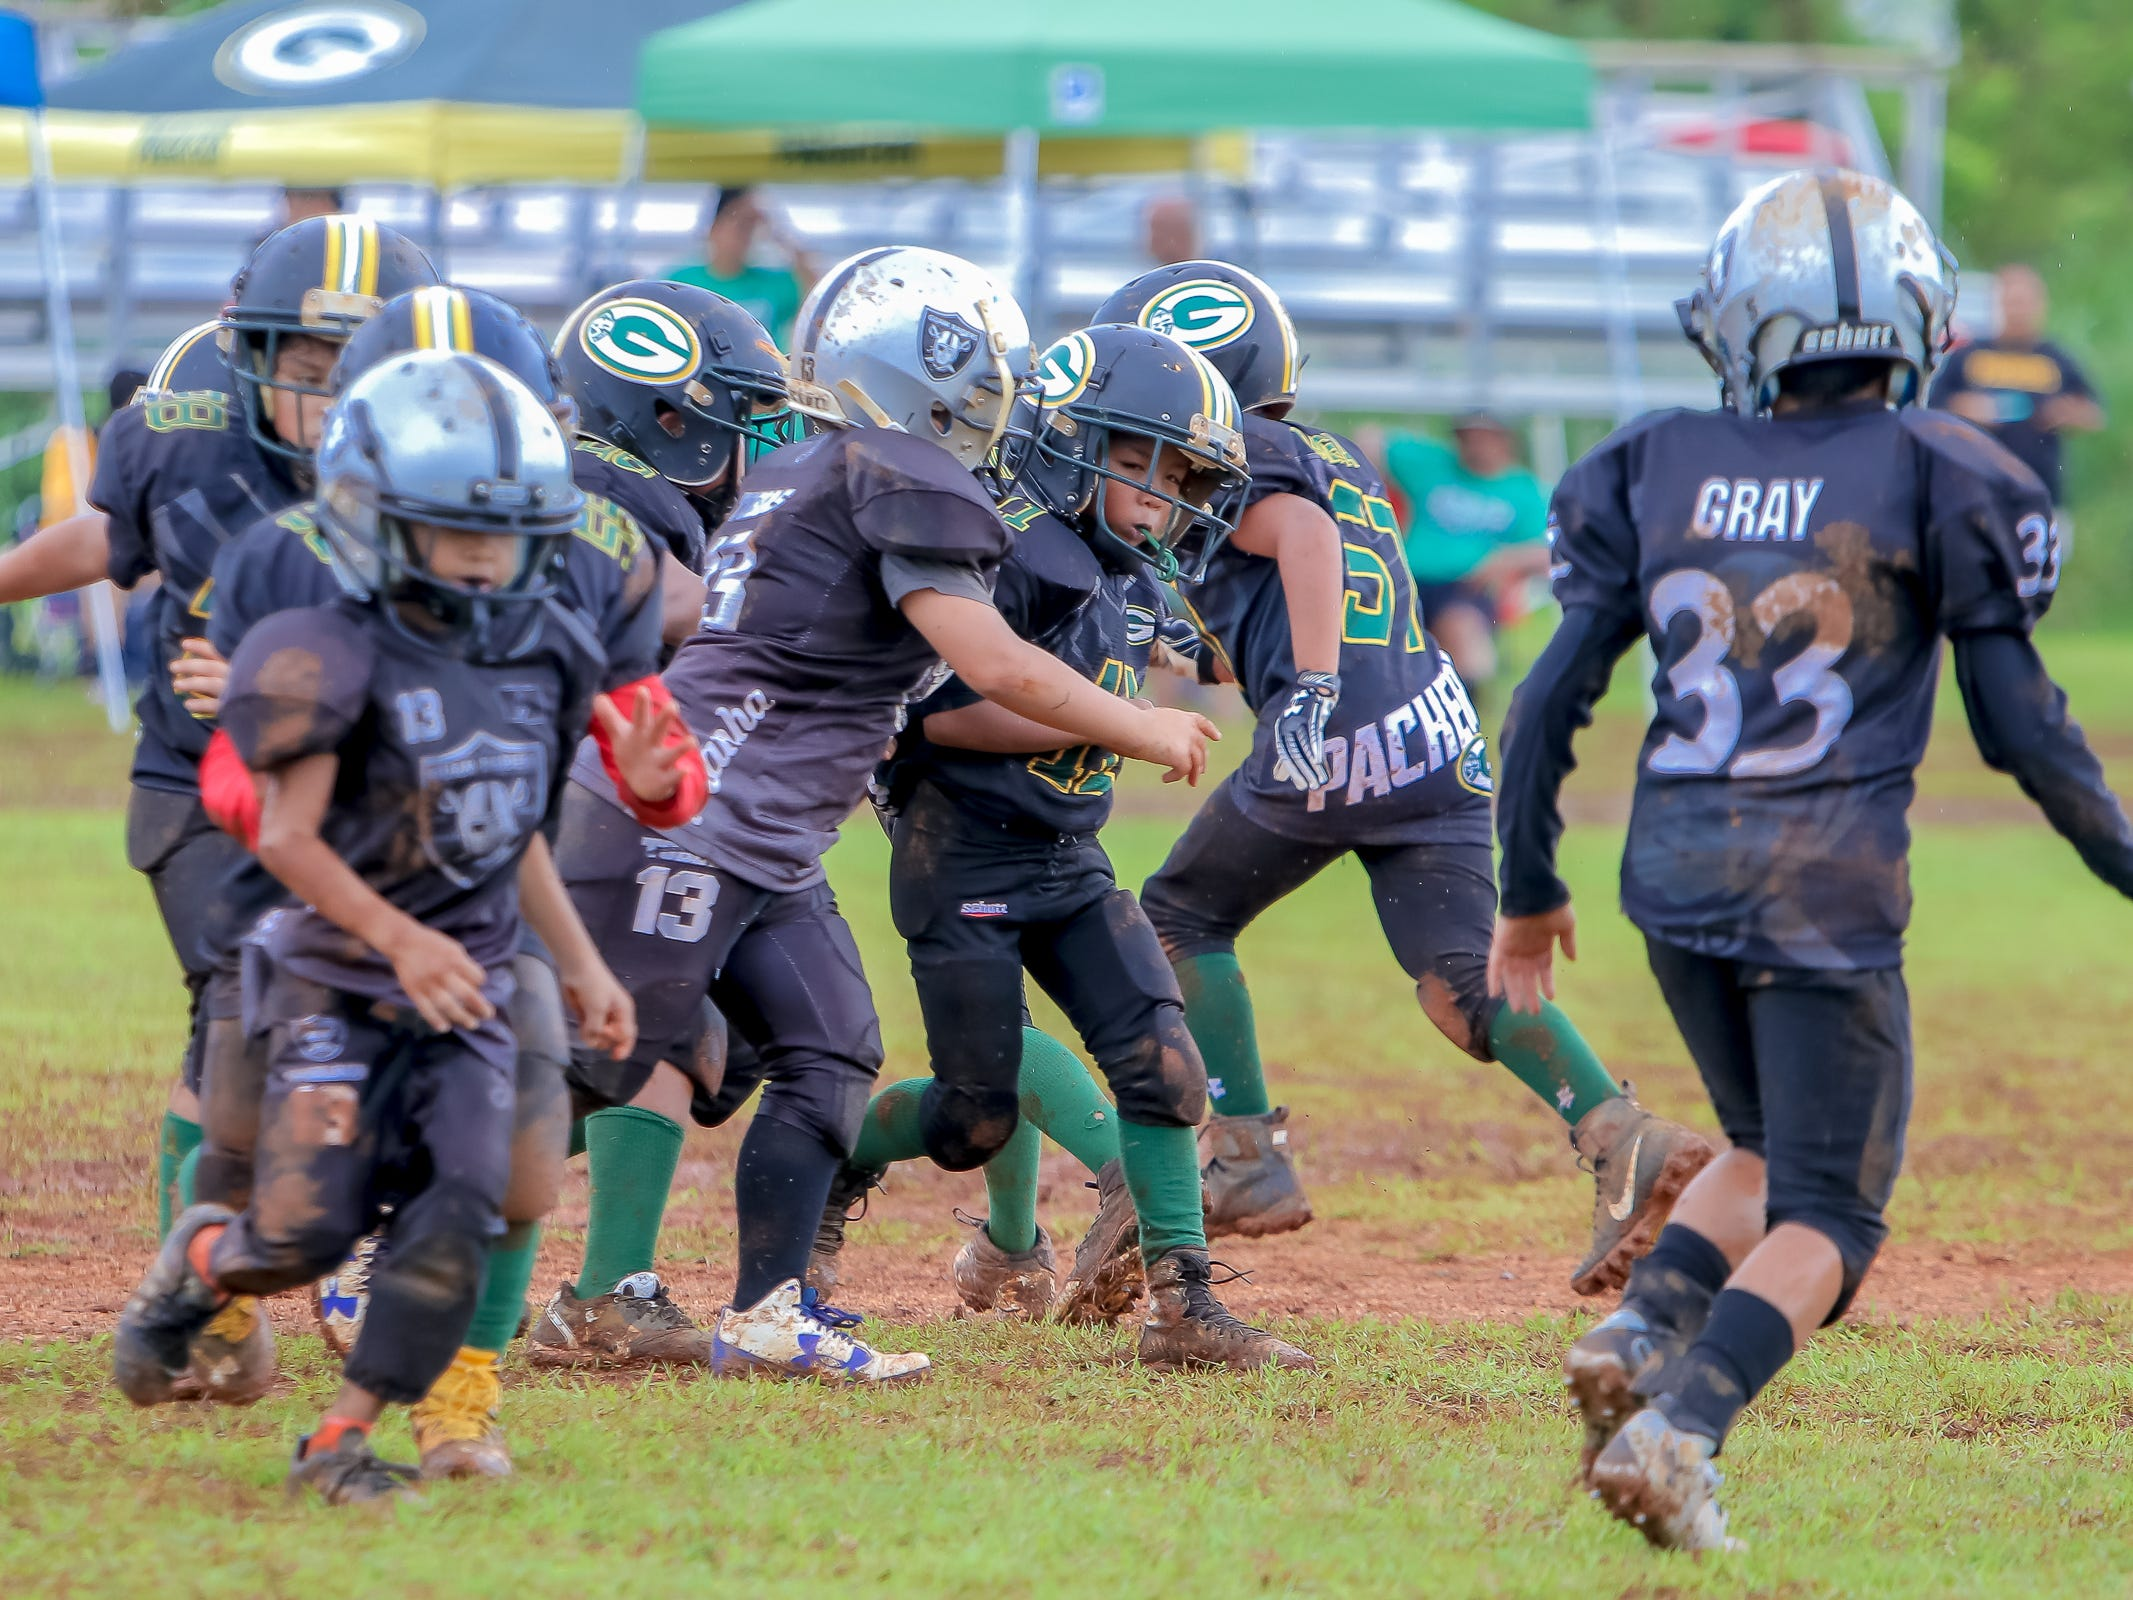 Raiders took on the Packers in a football match at the Raiders field in Tiyan on Sept 23. Virgilio Valencia /For PDN